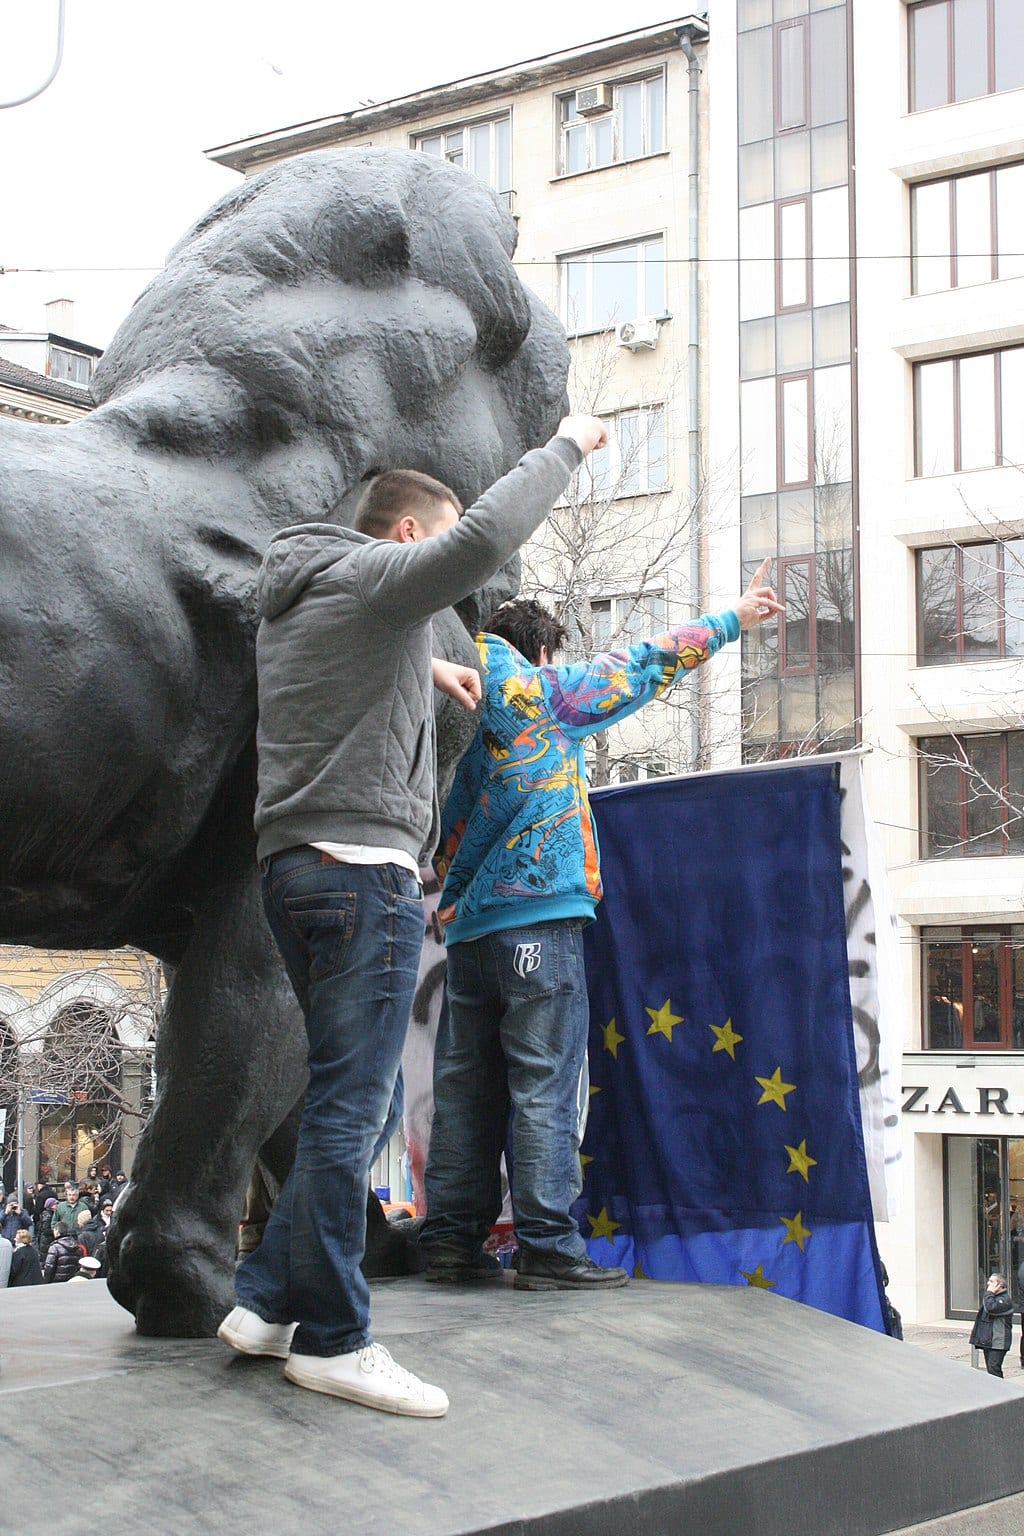 Protesters in Sofia standing on statue of a lion wave EU flag